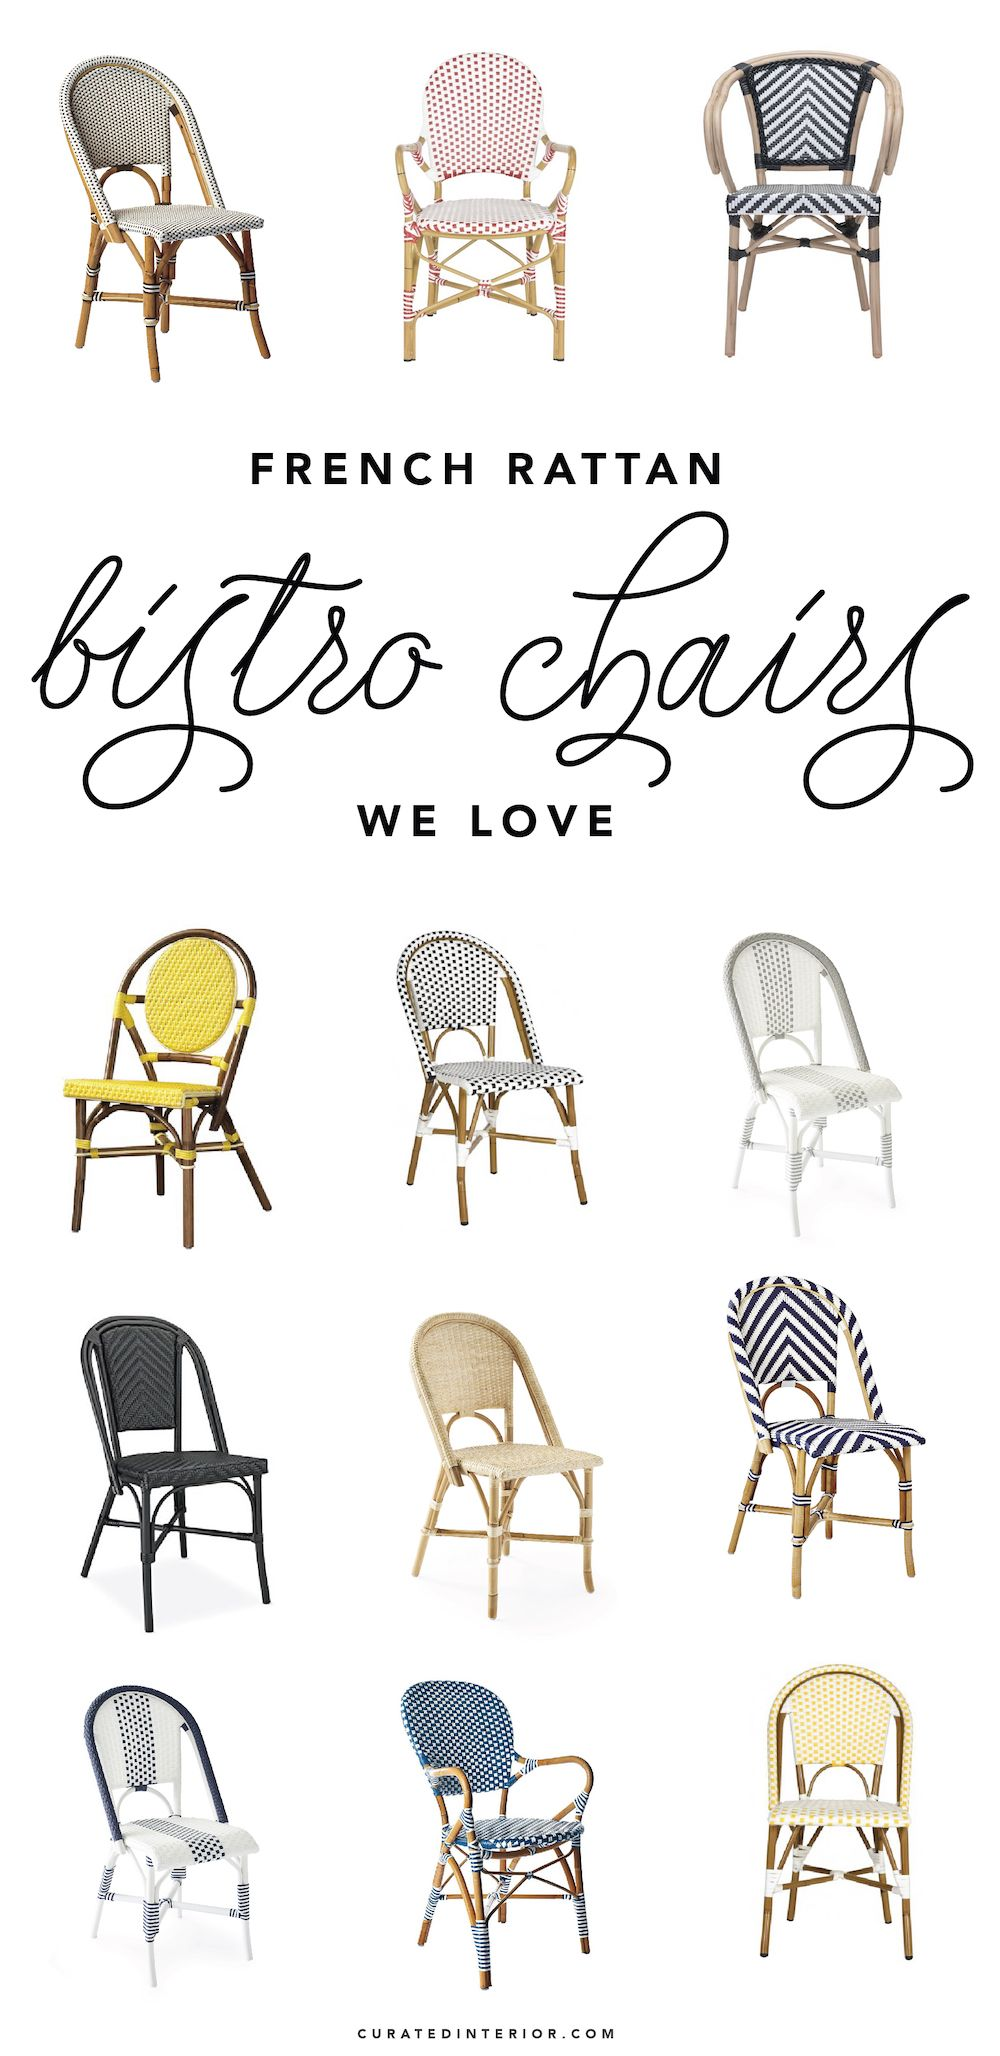 12 Darling French Bistro Chairs For Your Home 12 Darling French Bistro Chairs For Your Home    Bistro chairs  . French Bistro Chairs Toronto. Home Design Ideas